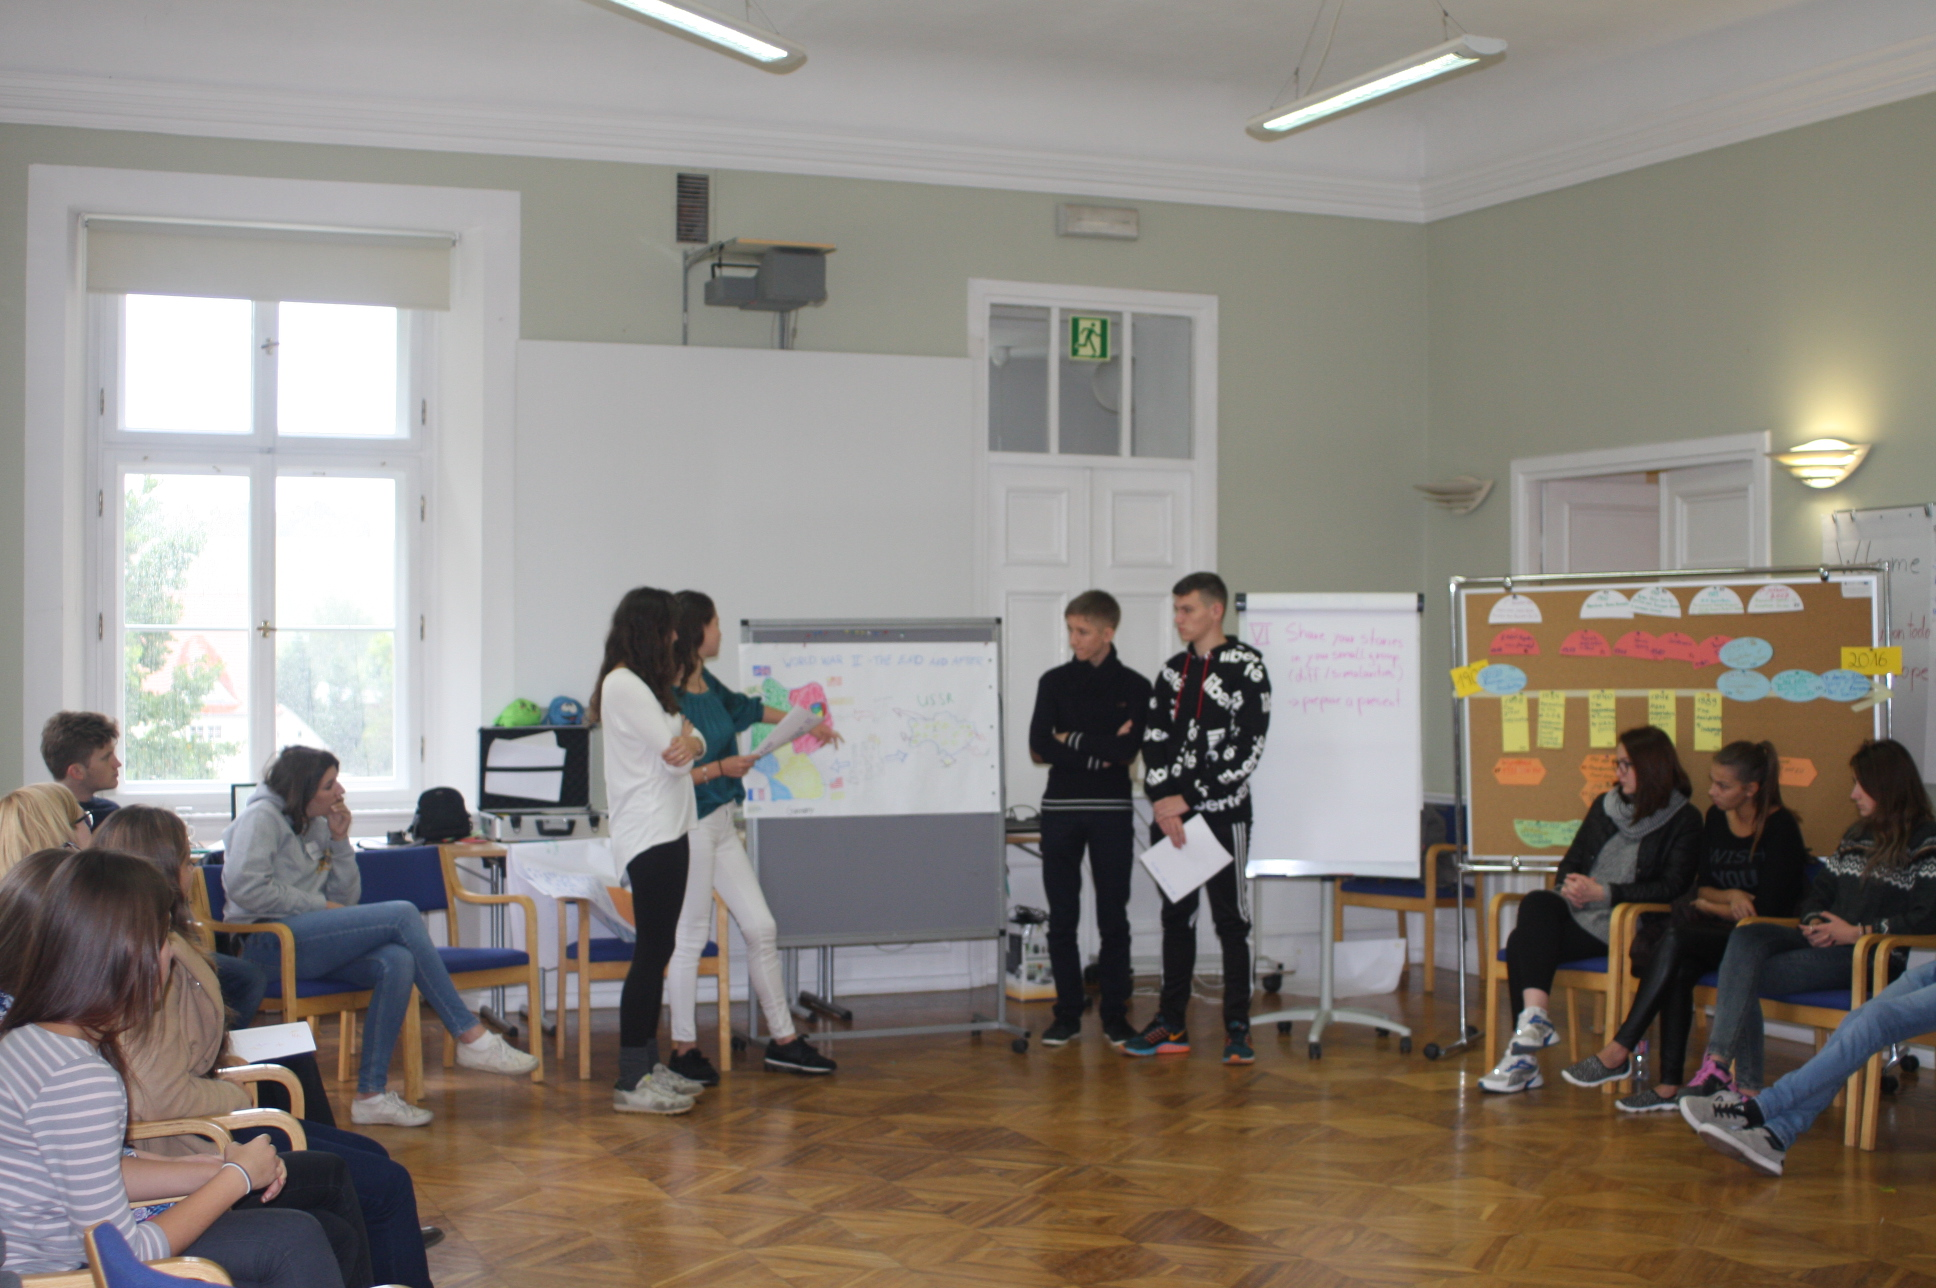 Presenting the outcome of the workshop.